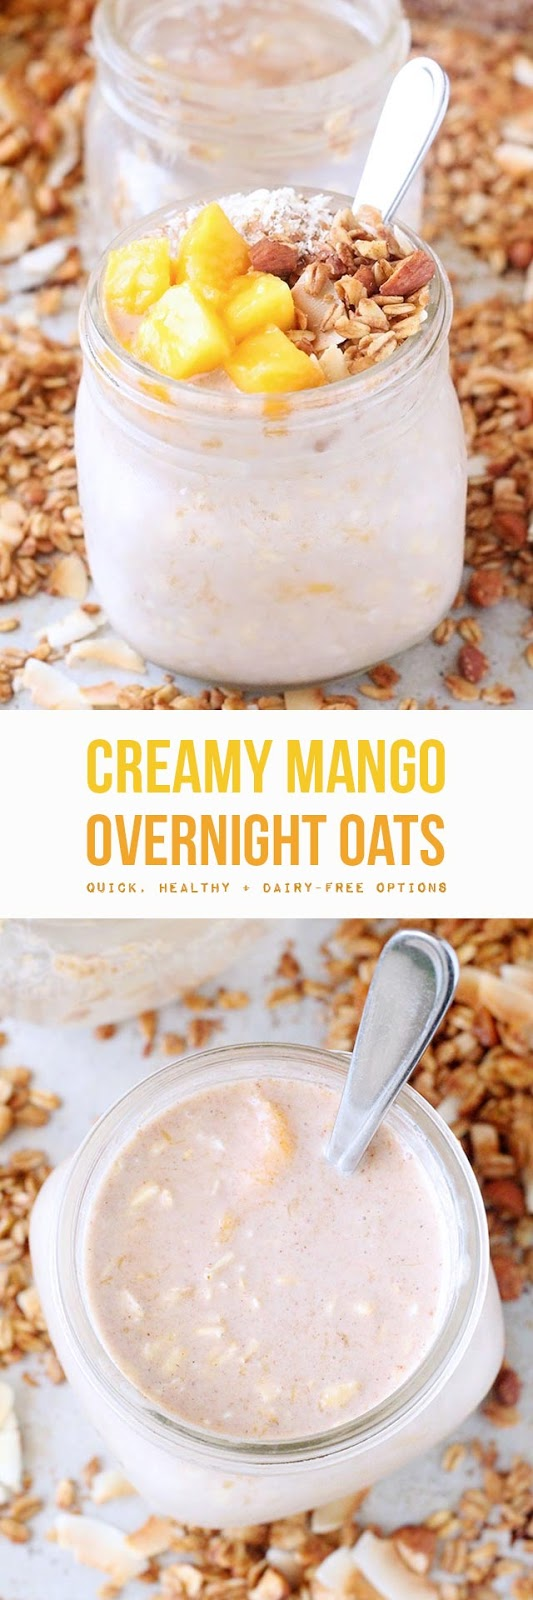 Creamy mango overnight oats made with made with easy & healthy ingredients like rolled oats, milk (dairy or non-dairy), real maple syrup, and fresh or frozen mango (which is full of vitamin C + A & fiber). A mere five minutes of prep the night before gives you healthy grab-and-go real food breakfasts for days.